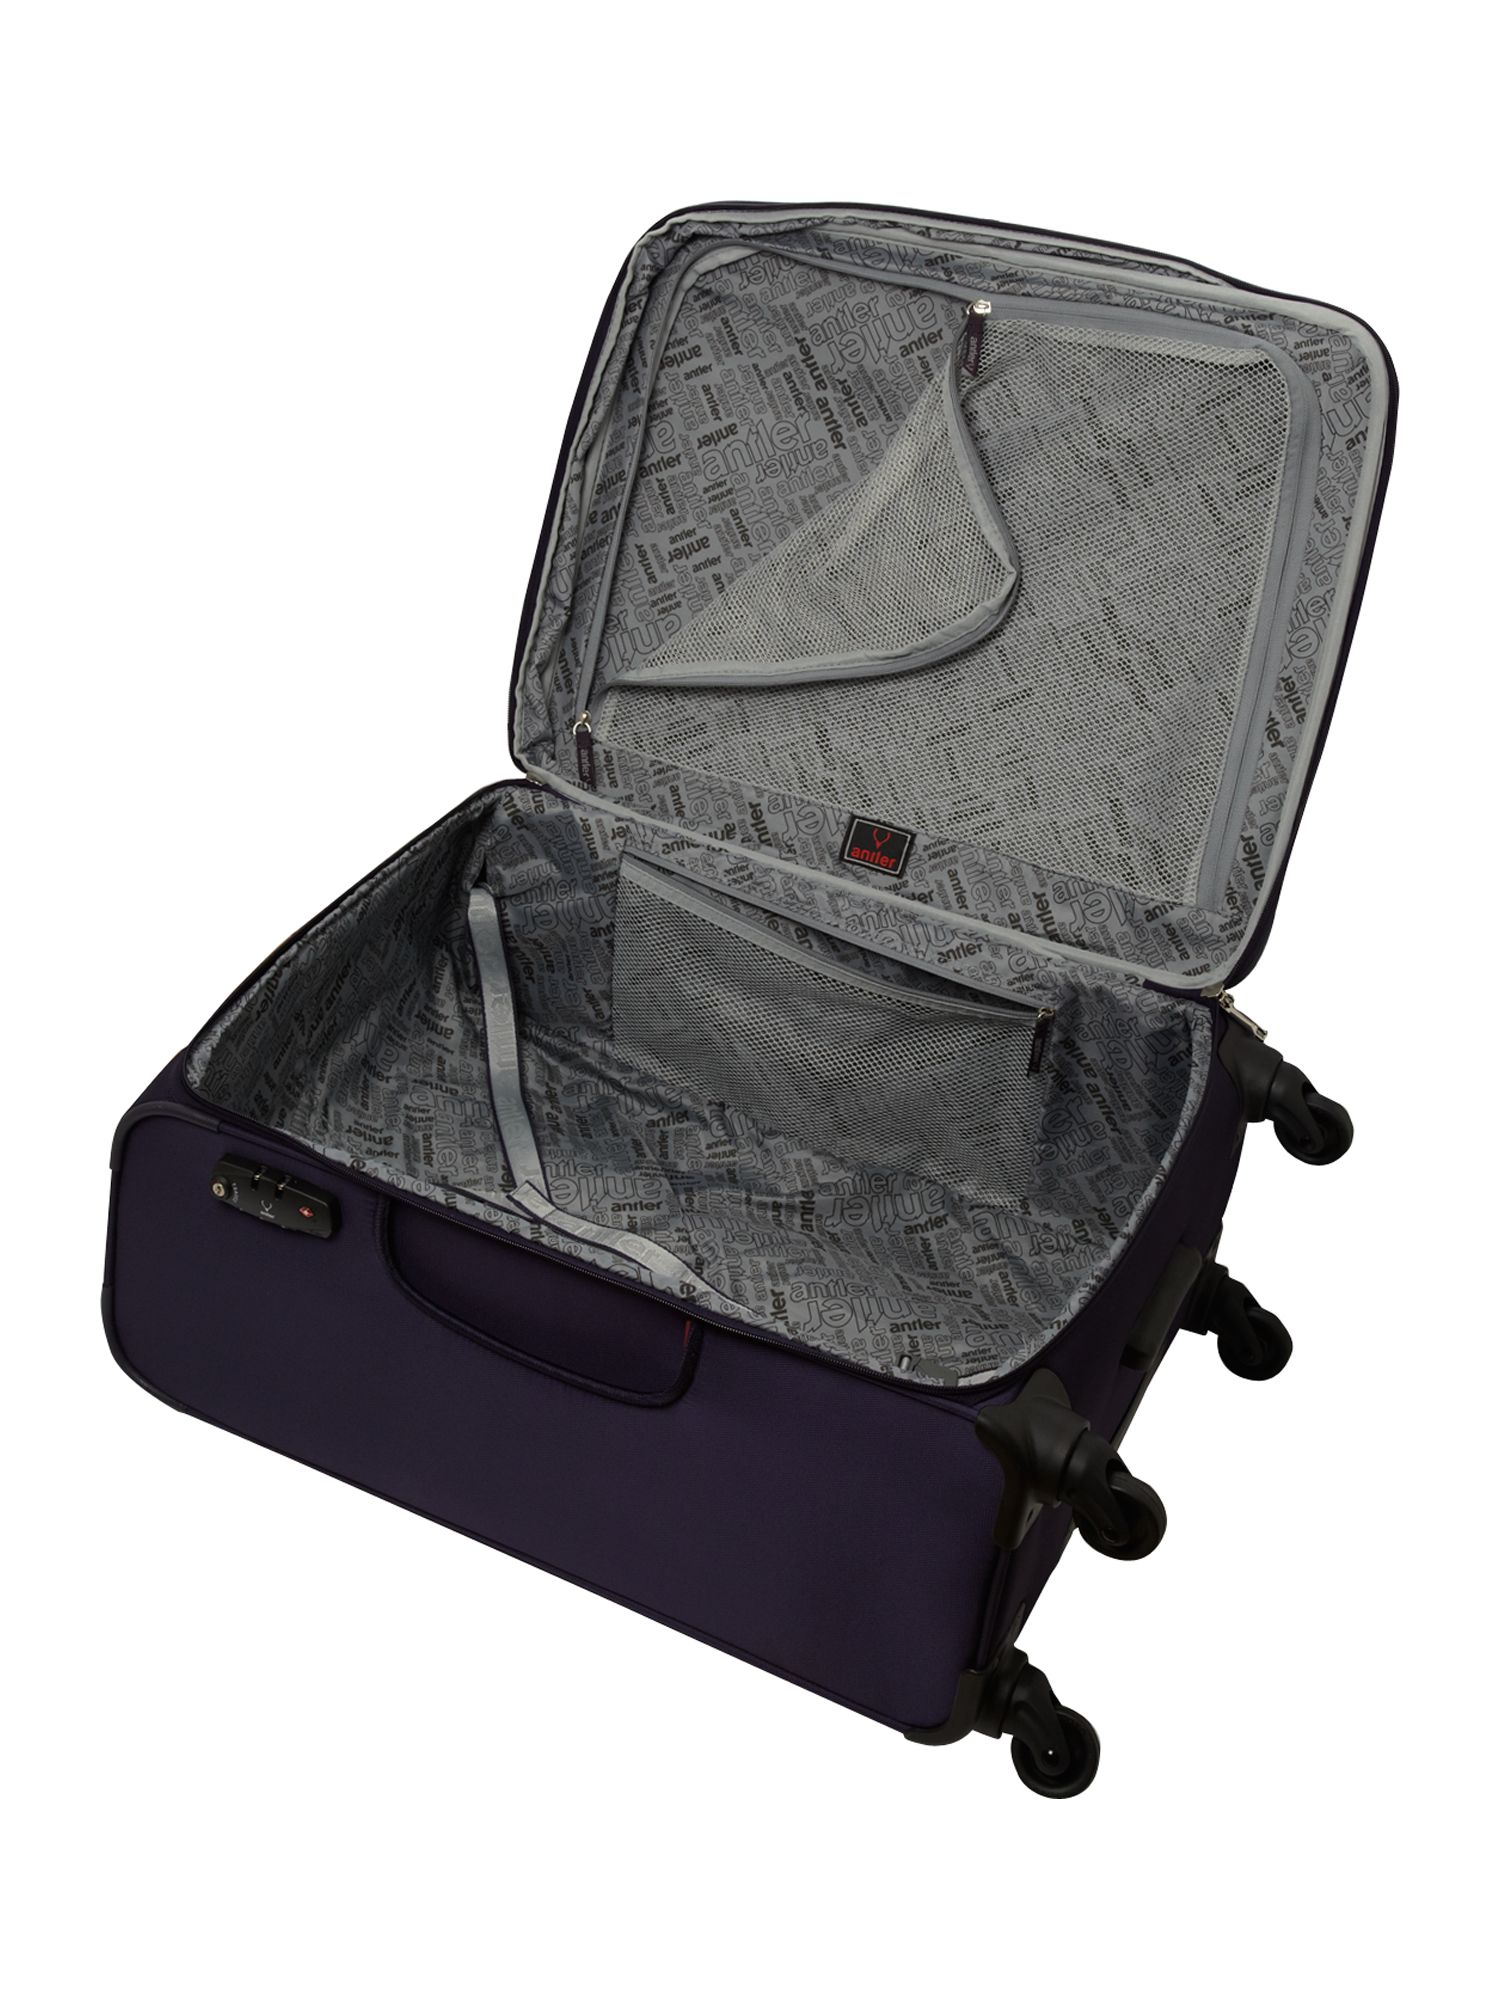 CyberLite Medium Rollercase Purple